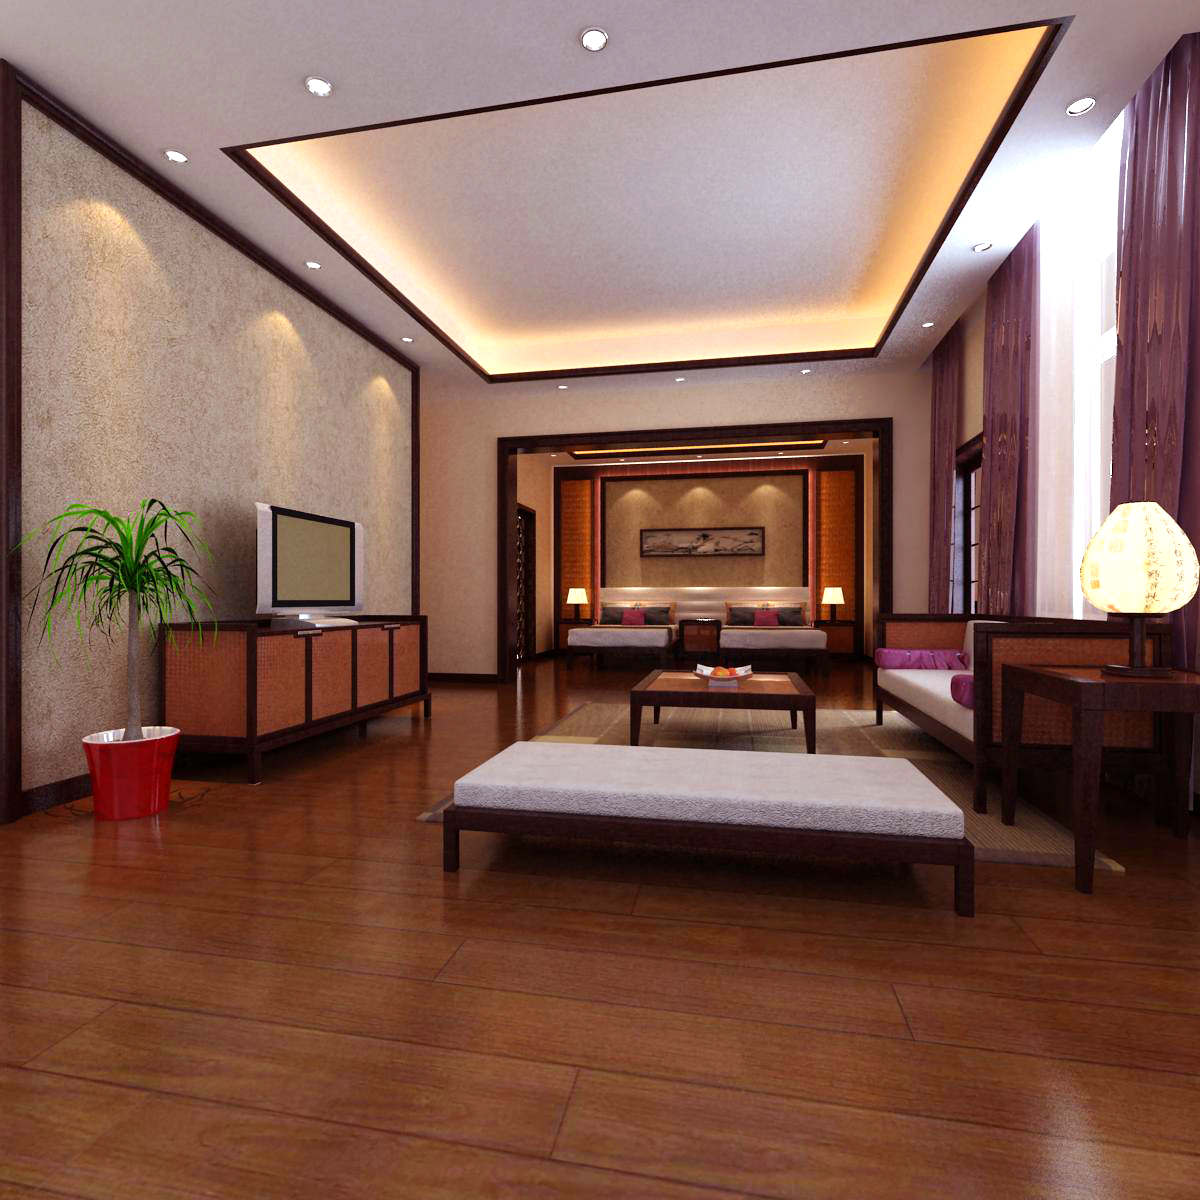 Living Room With Fancy Curtains 3d Model